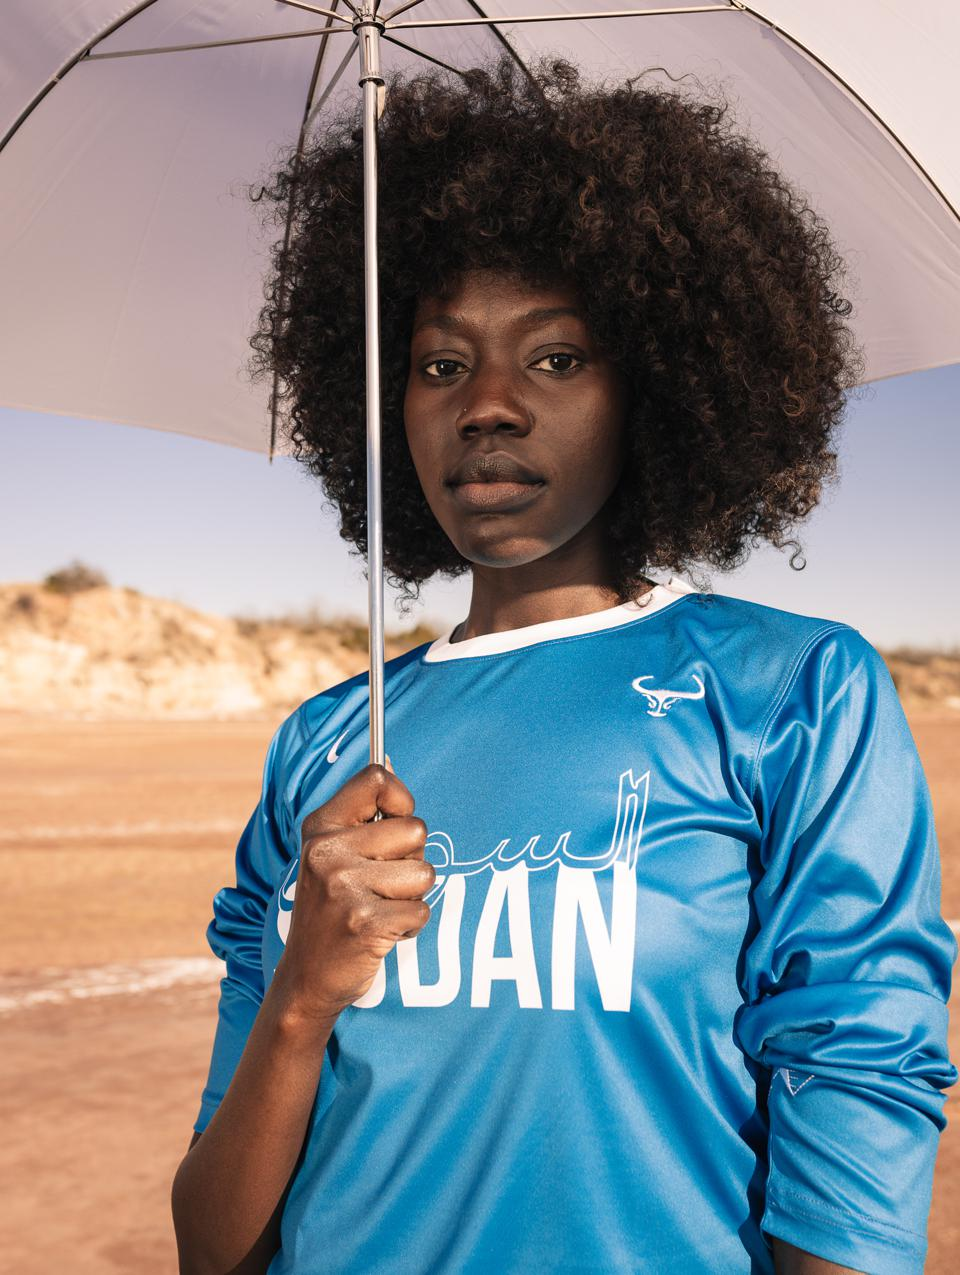 """""""What the world witnessed in 2019 demonstrates there is so much hope for the change we envision for our countries. The power is in the people and there can be solidarity amongst the people of Sudan and South Sudan. I believe the release of this jersey honors that."""" - Grace Lul, Sudanese model depicted."""